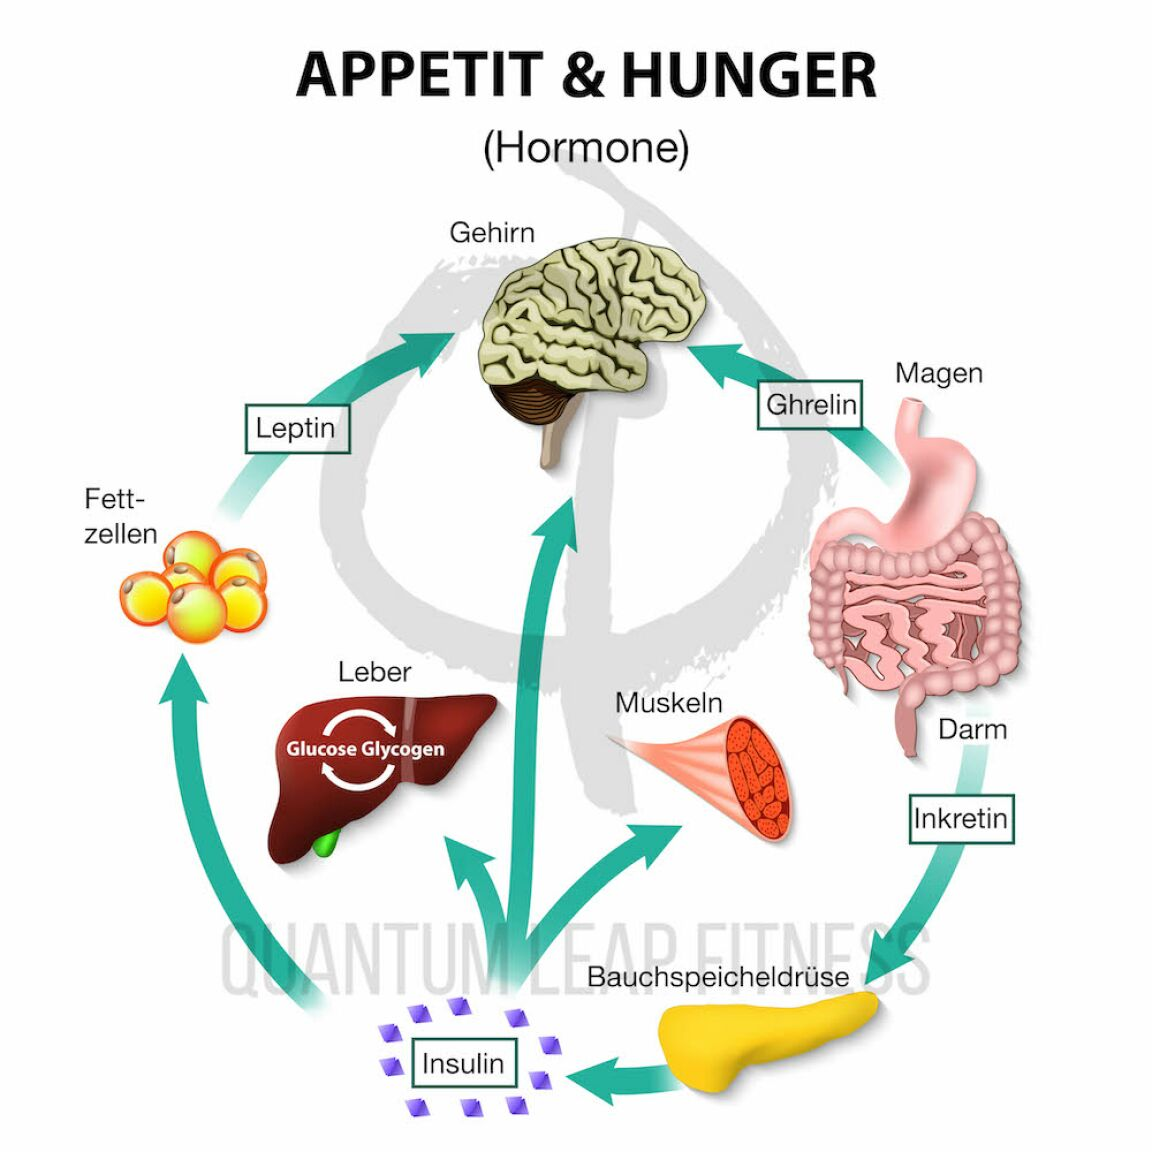 Hormones,Appetite,And,Hunger.,Human,Endocrine,System.,Incretin,,Ghrelin,,Leptin